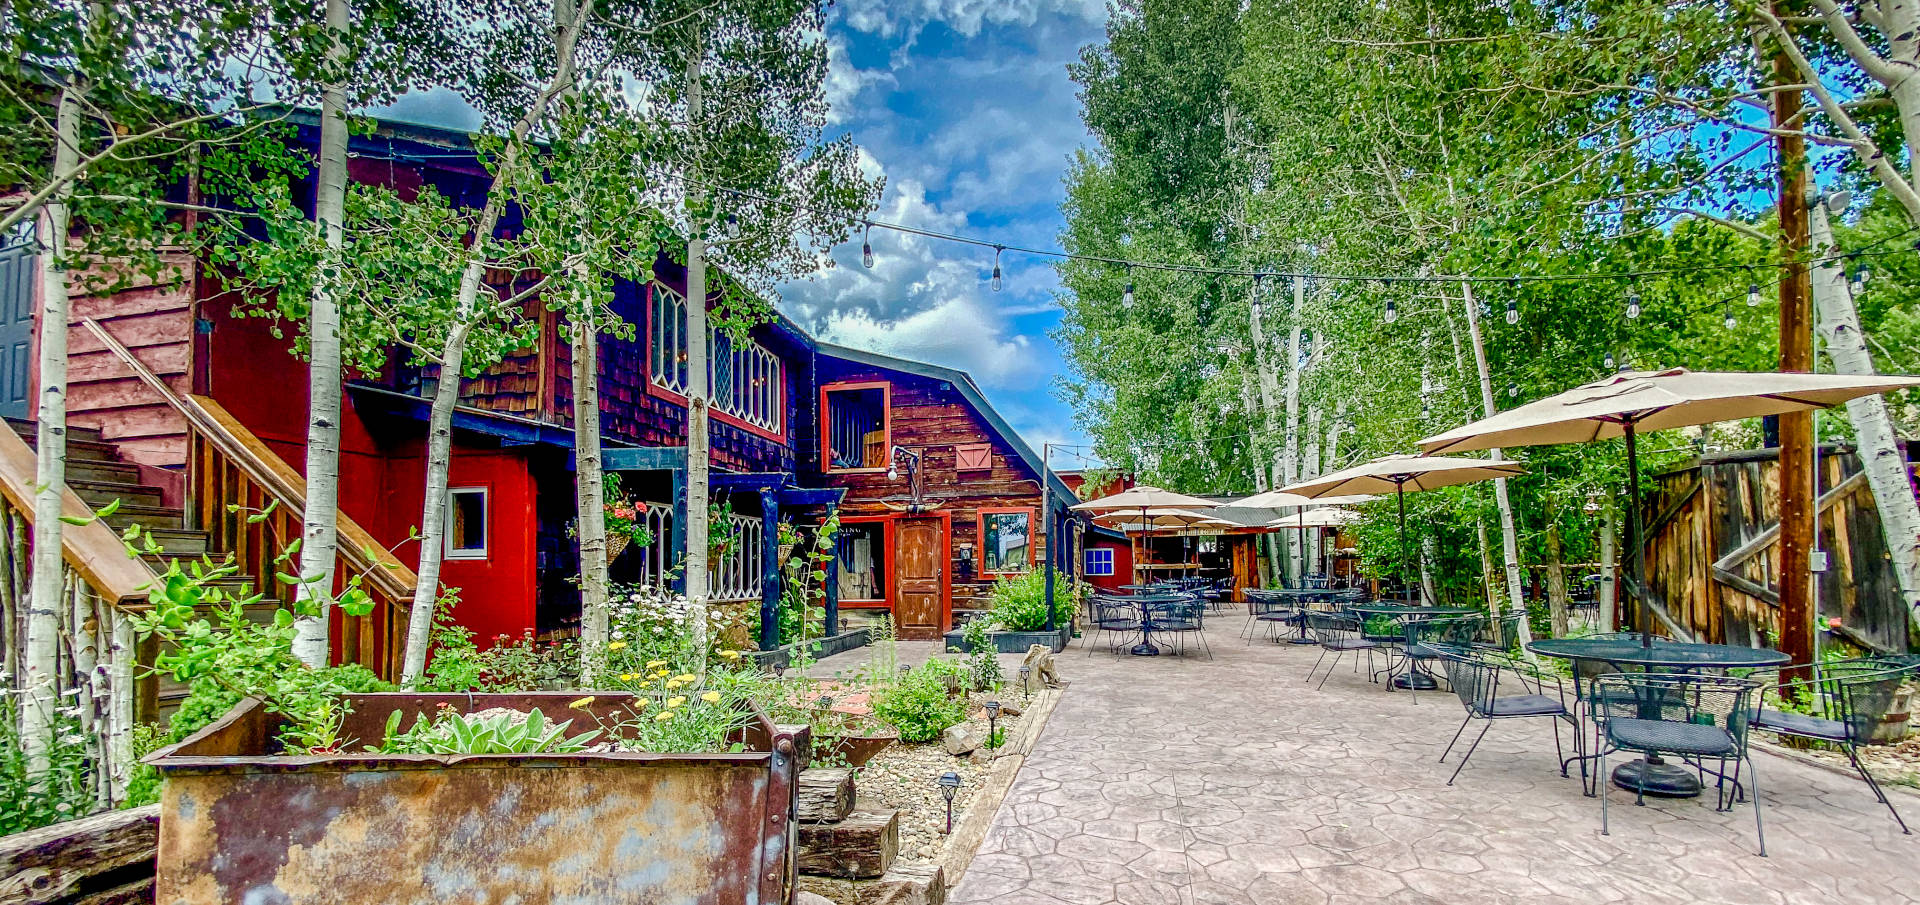 Ole Miner's Outside Entrance and Patio